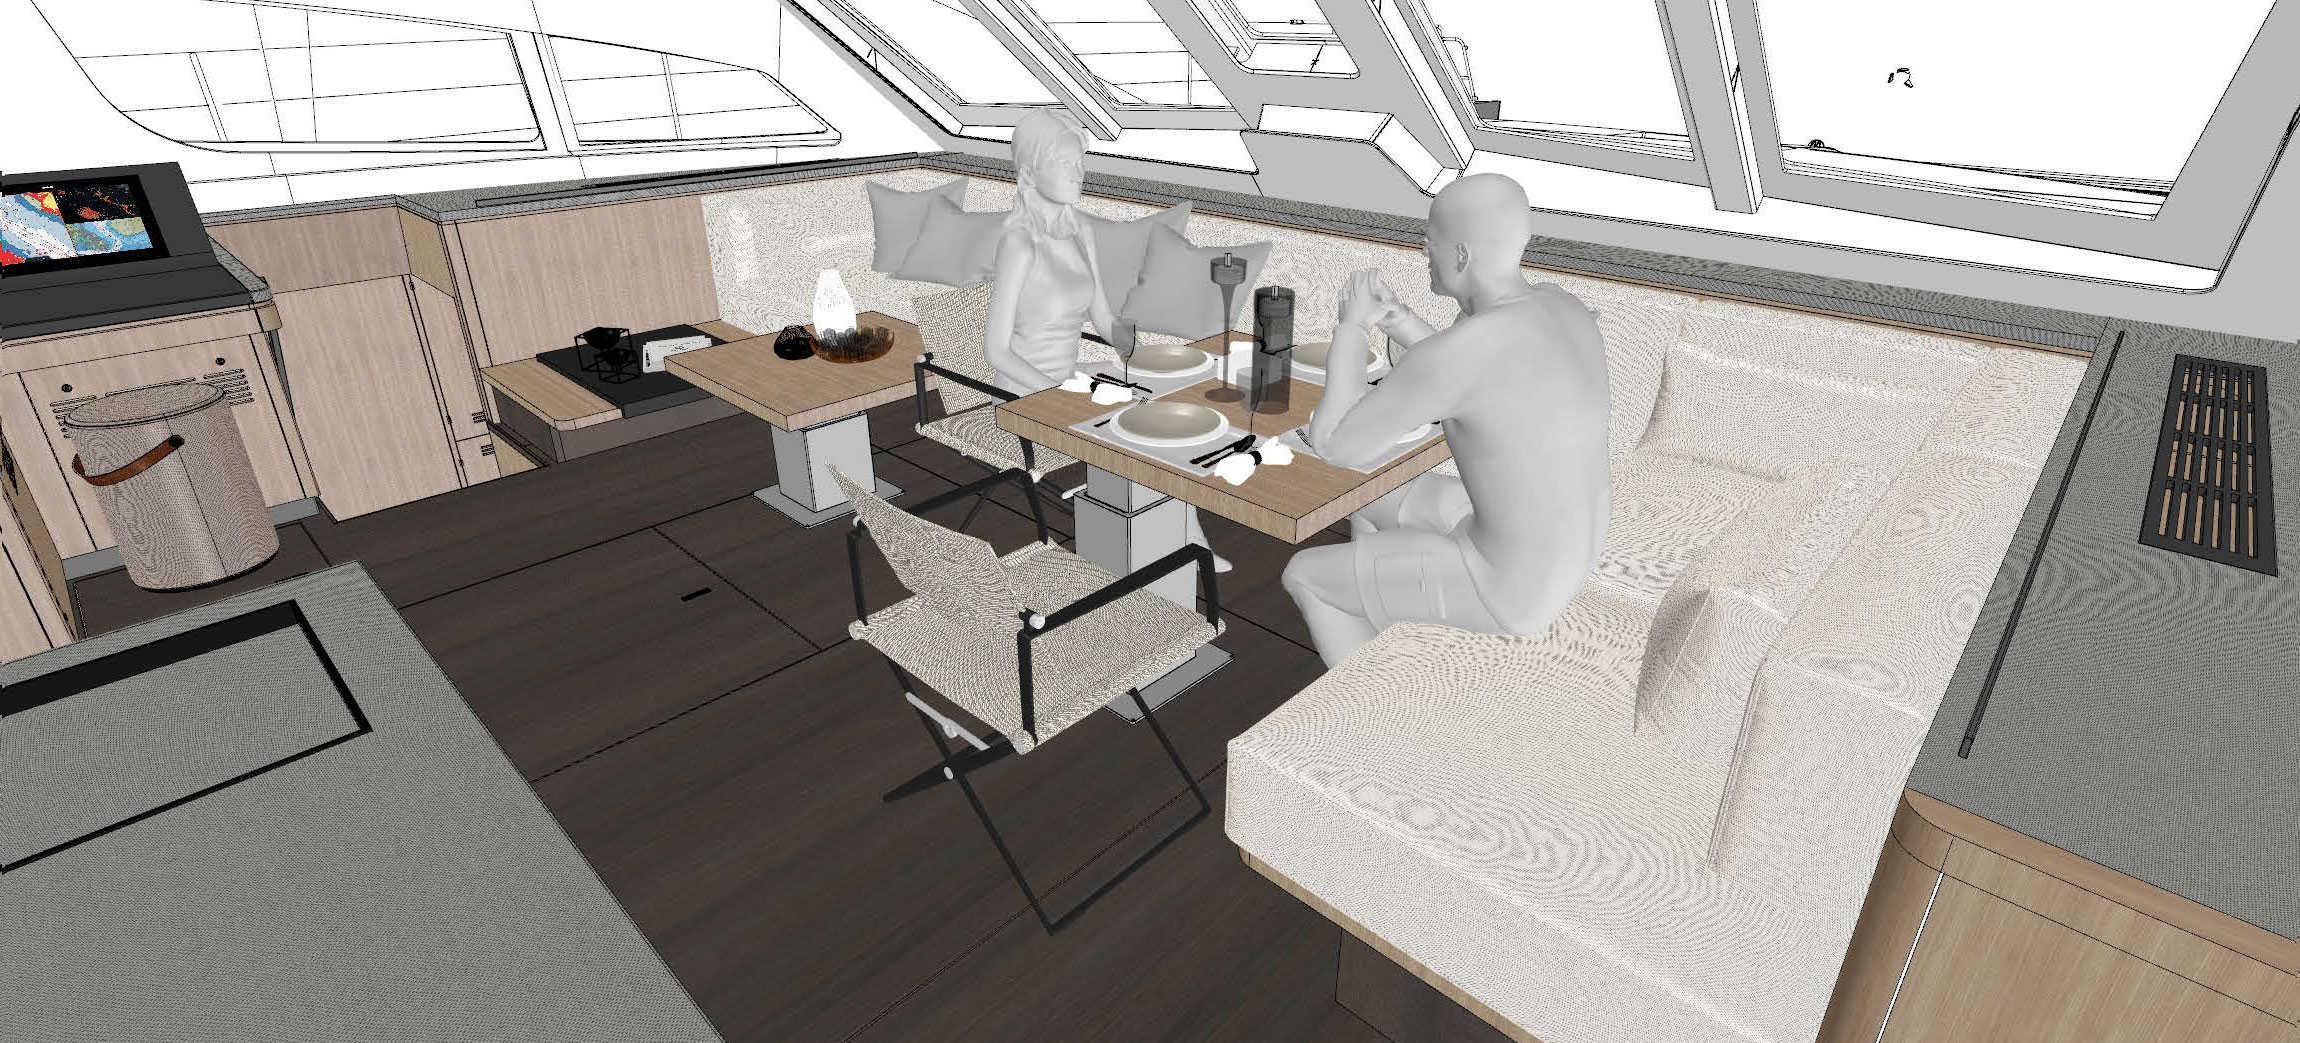 Dining configuration